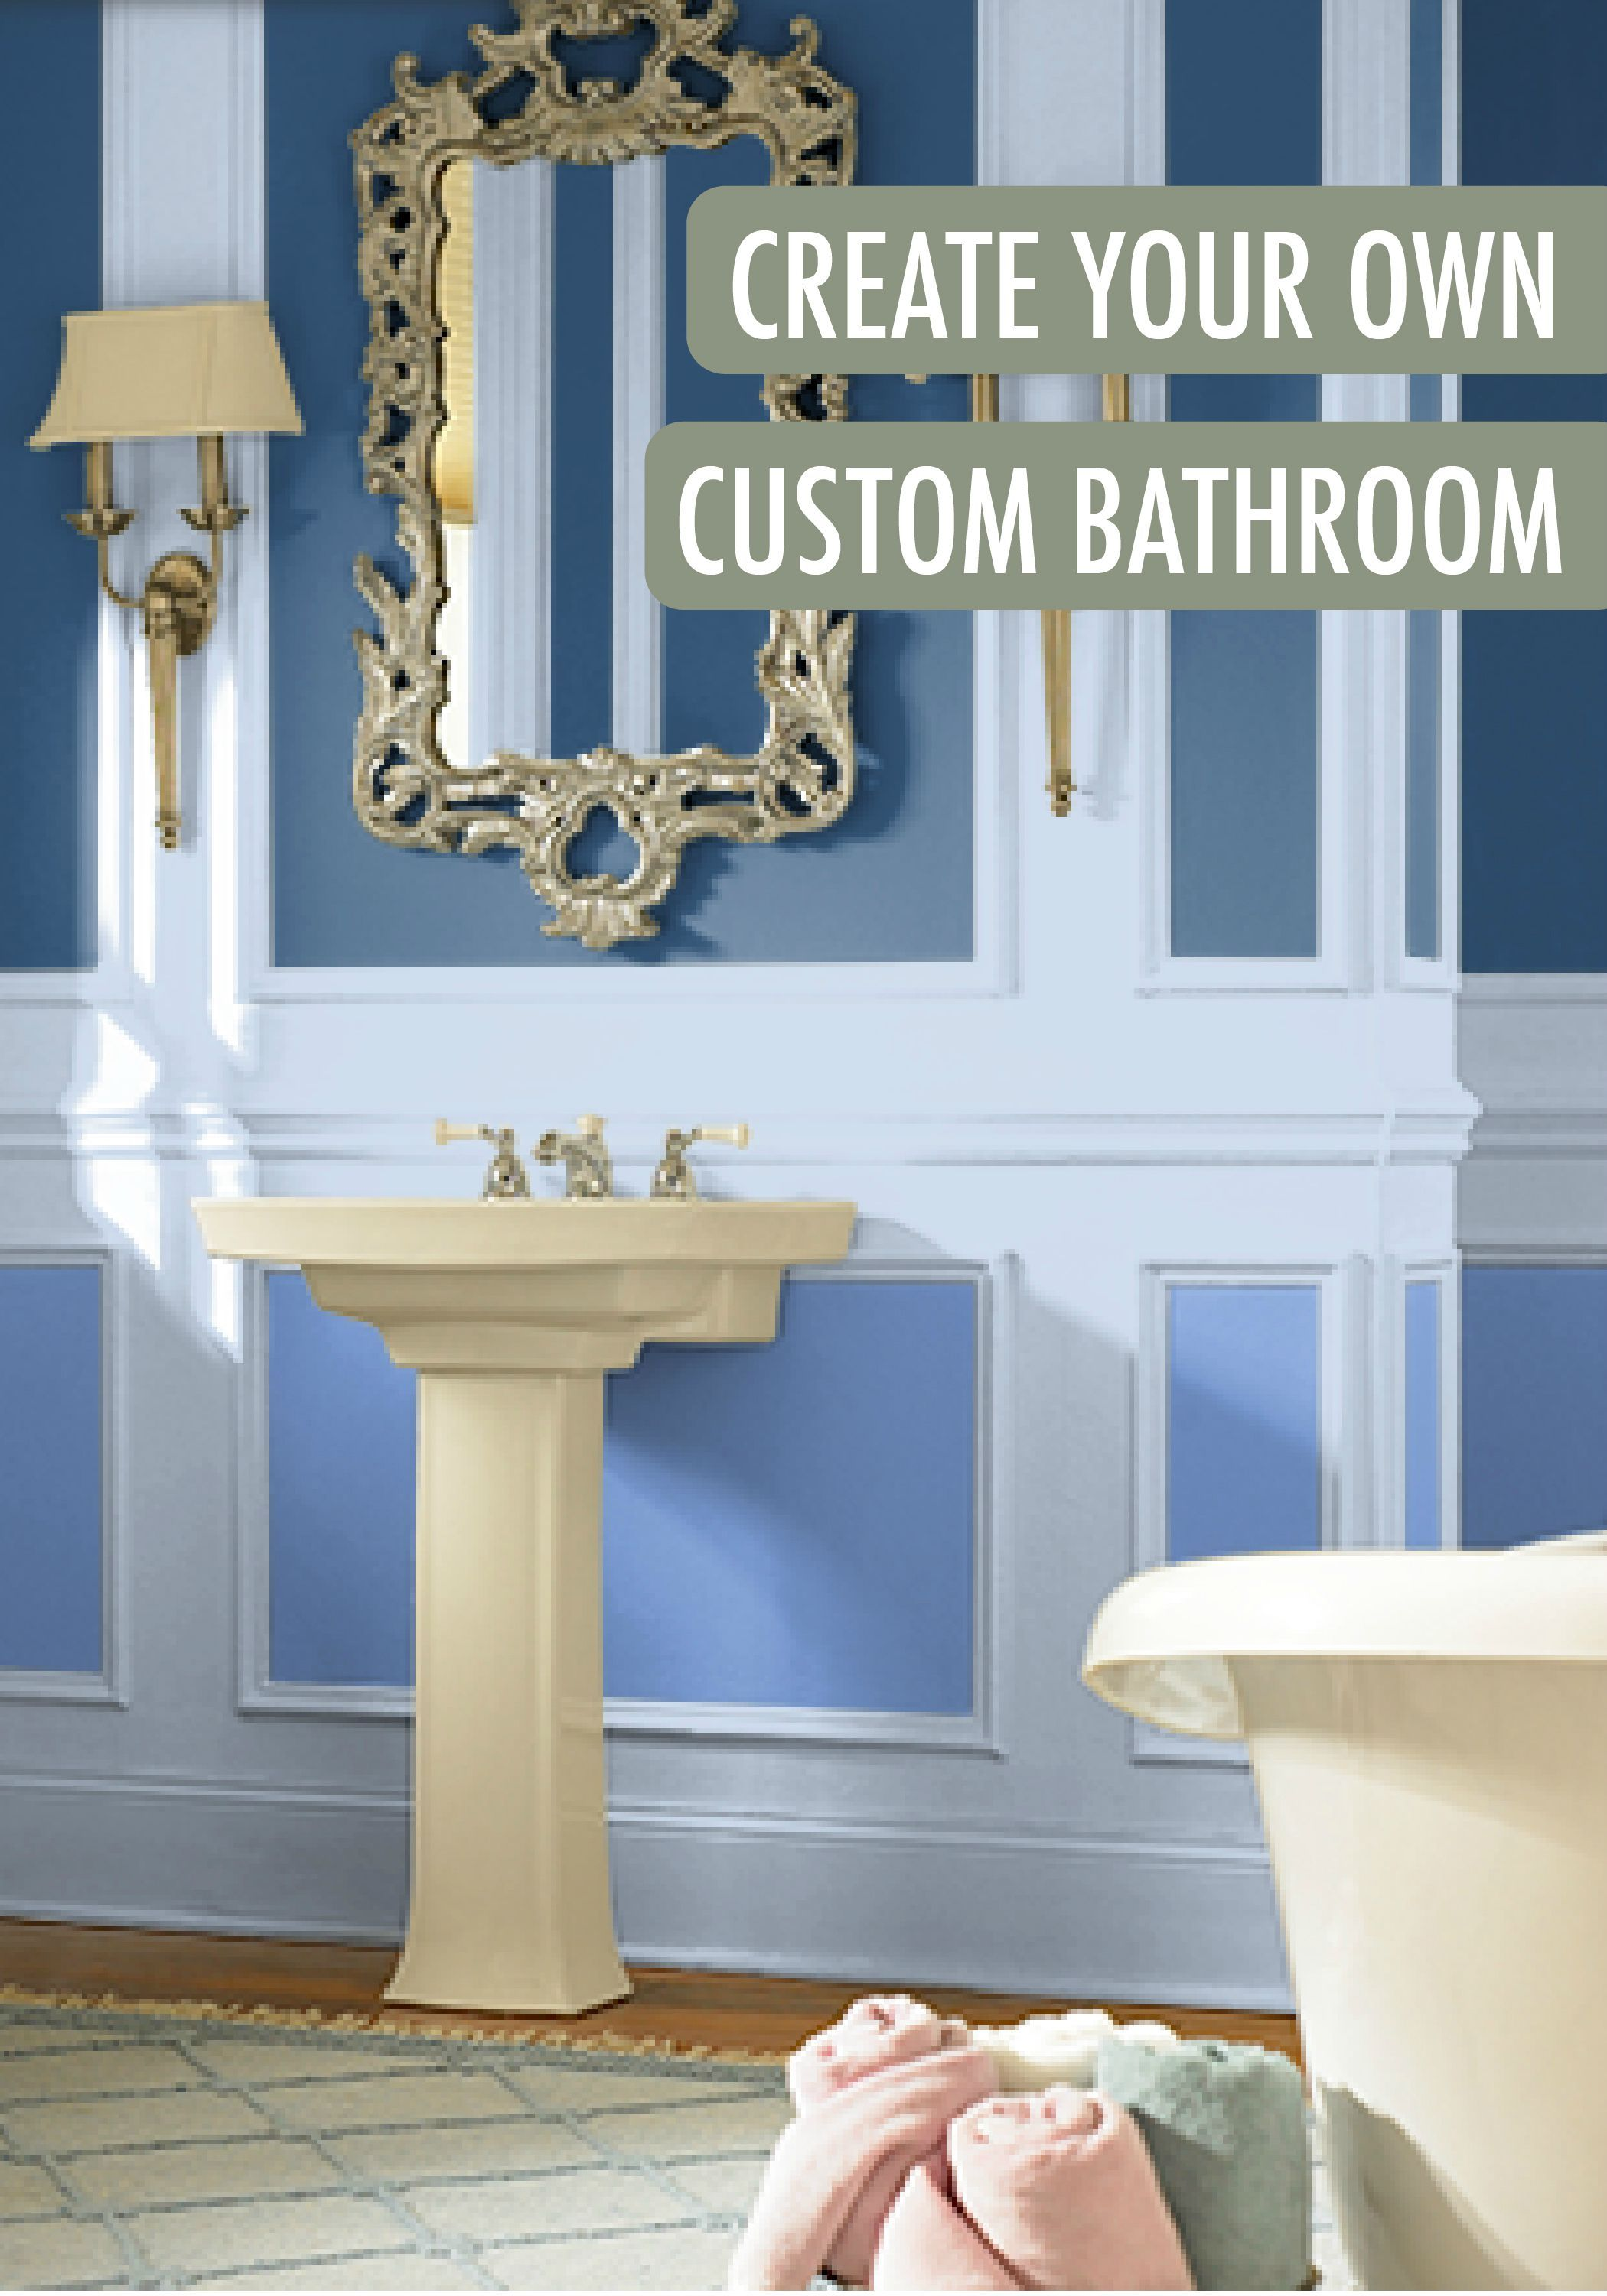 Create your own bathroom finest blizzard cork wall tile for Bathroom design your own